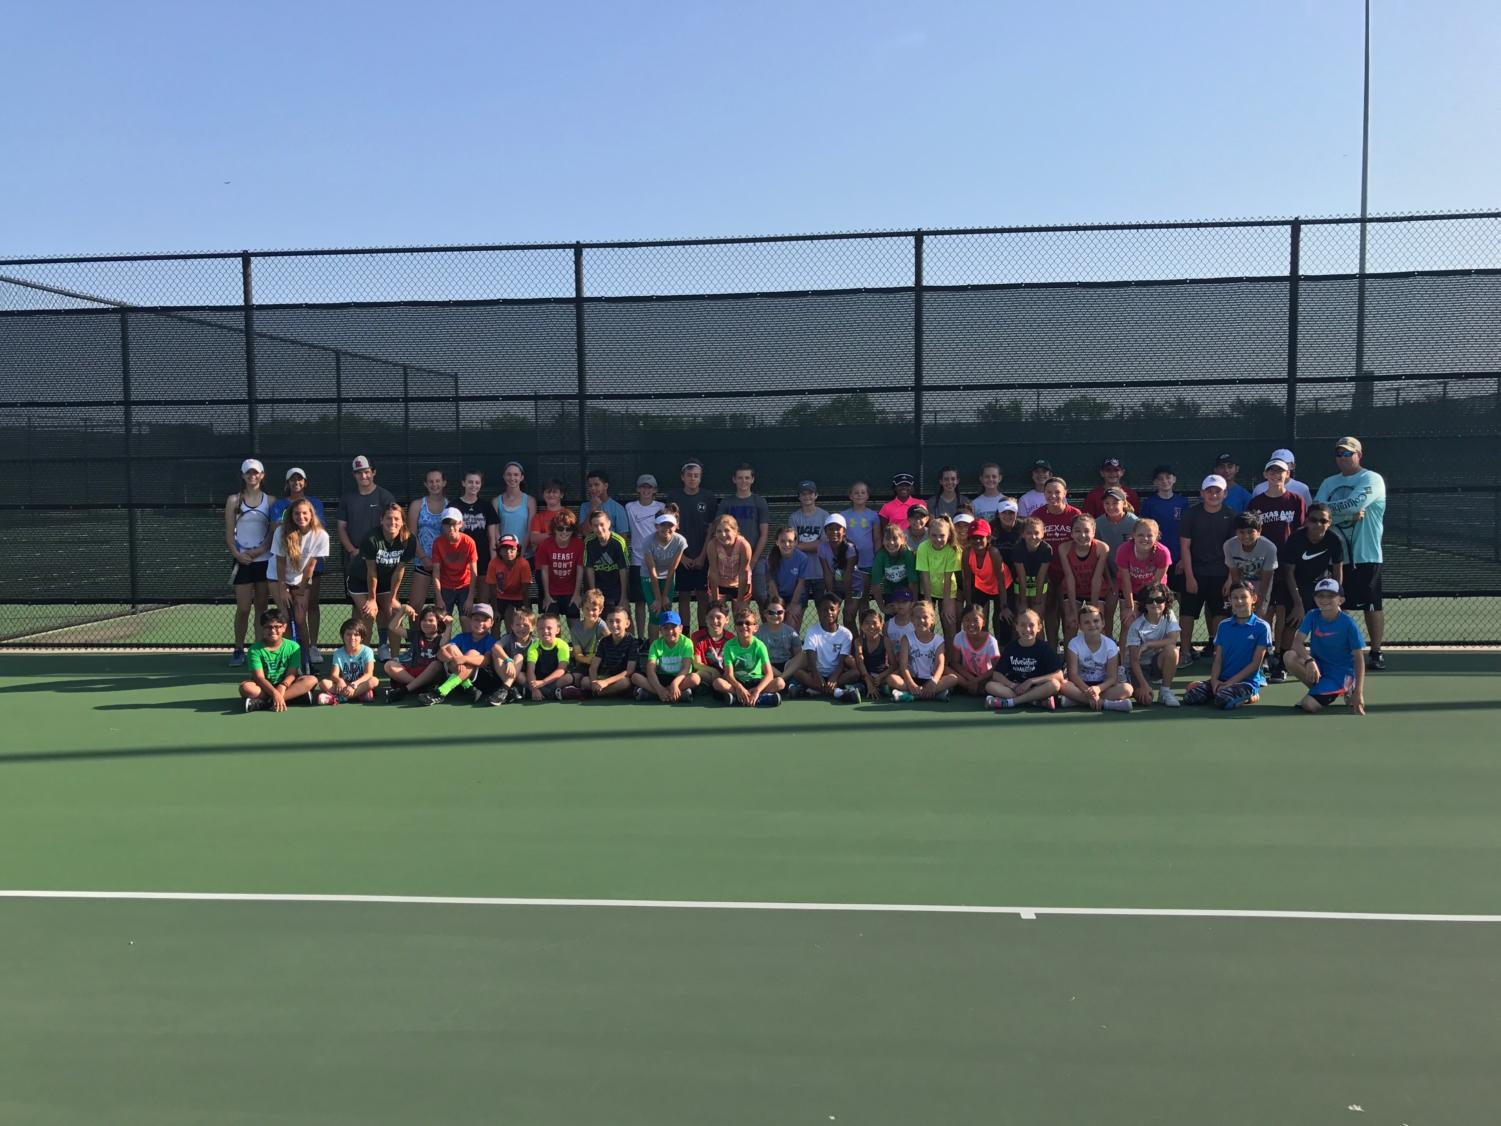 Last years participants of Coach Bowling's tennis camp.